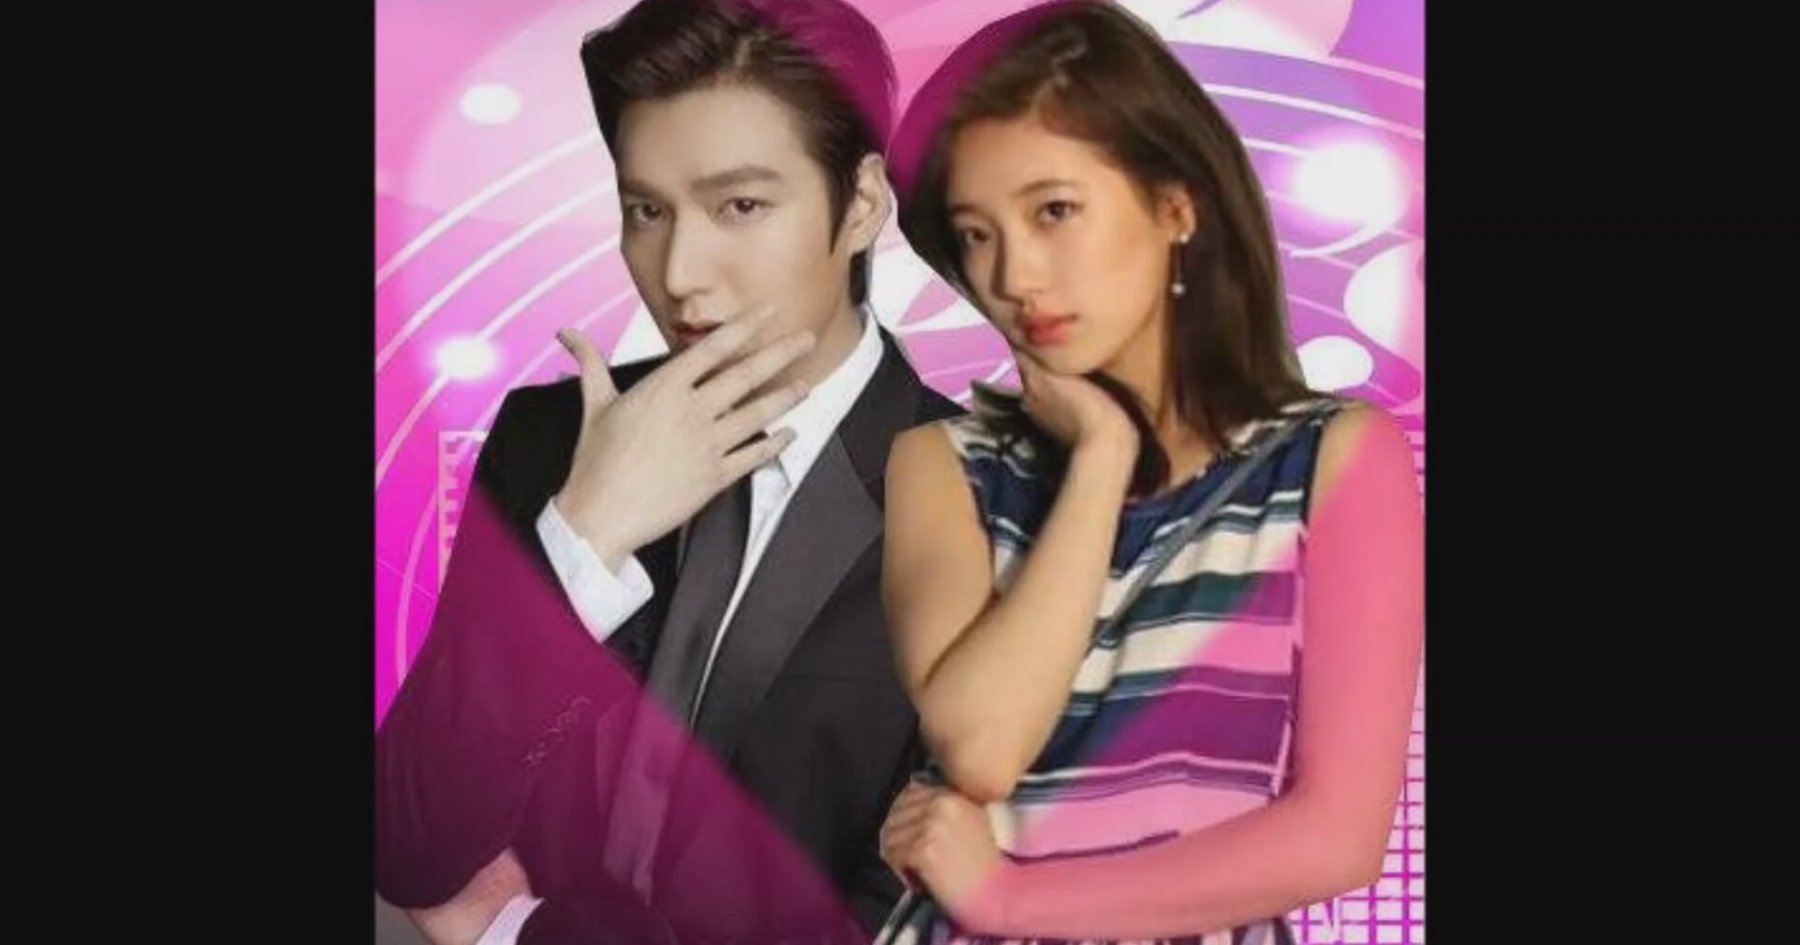 Suzy and lee min ho zlesene com